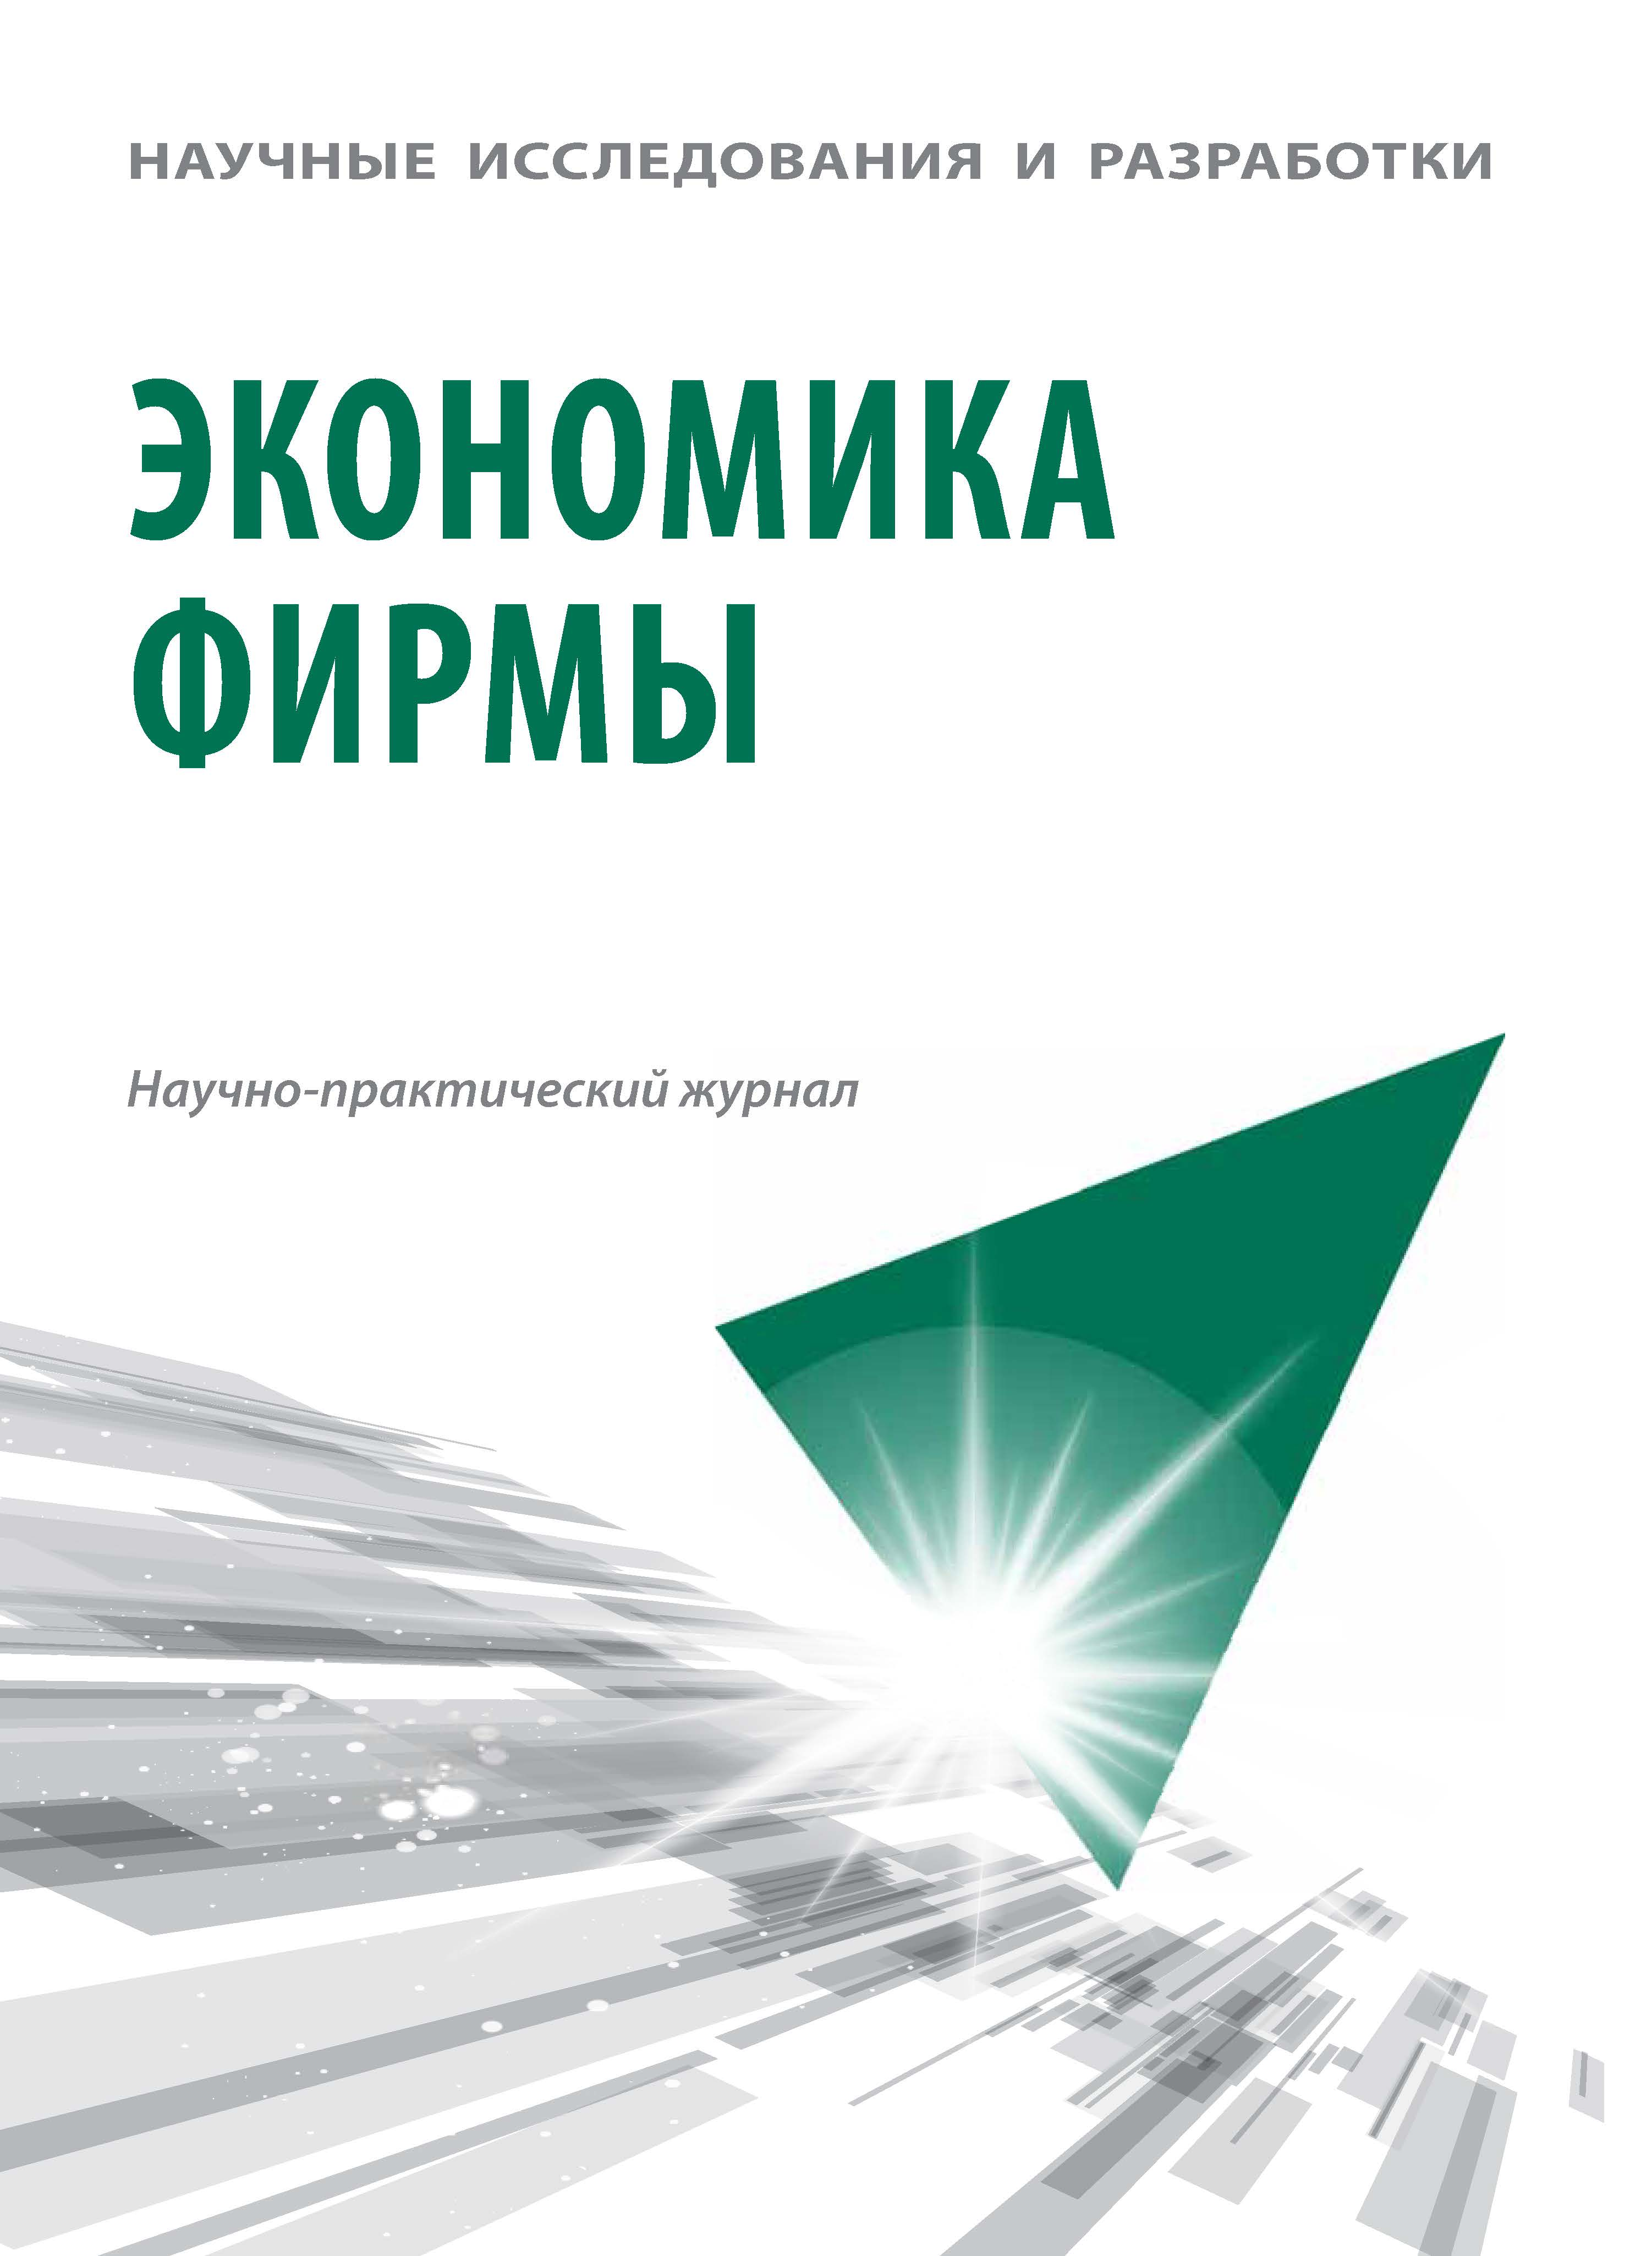 Features of Modern Socio-Economic Development and Management of Single Towns of the Russian Federation